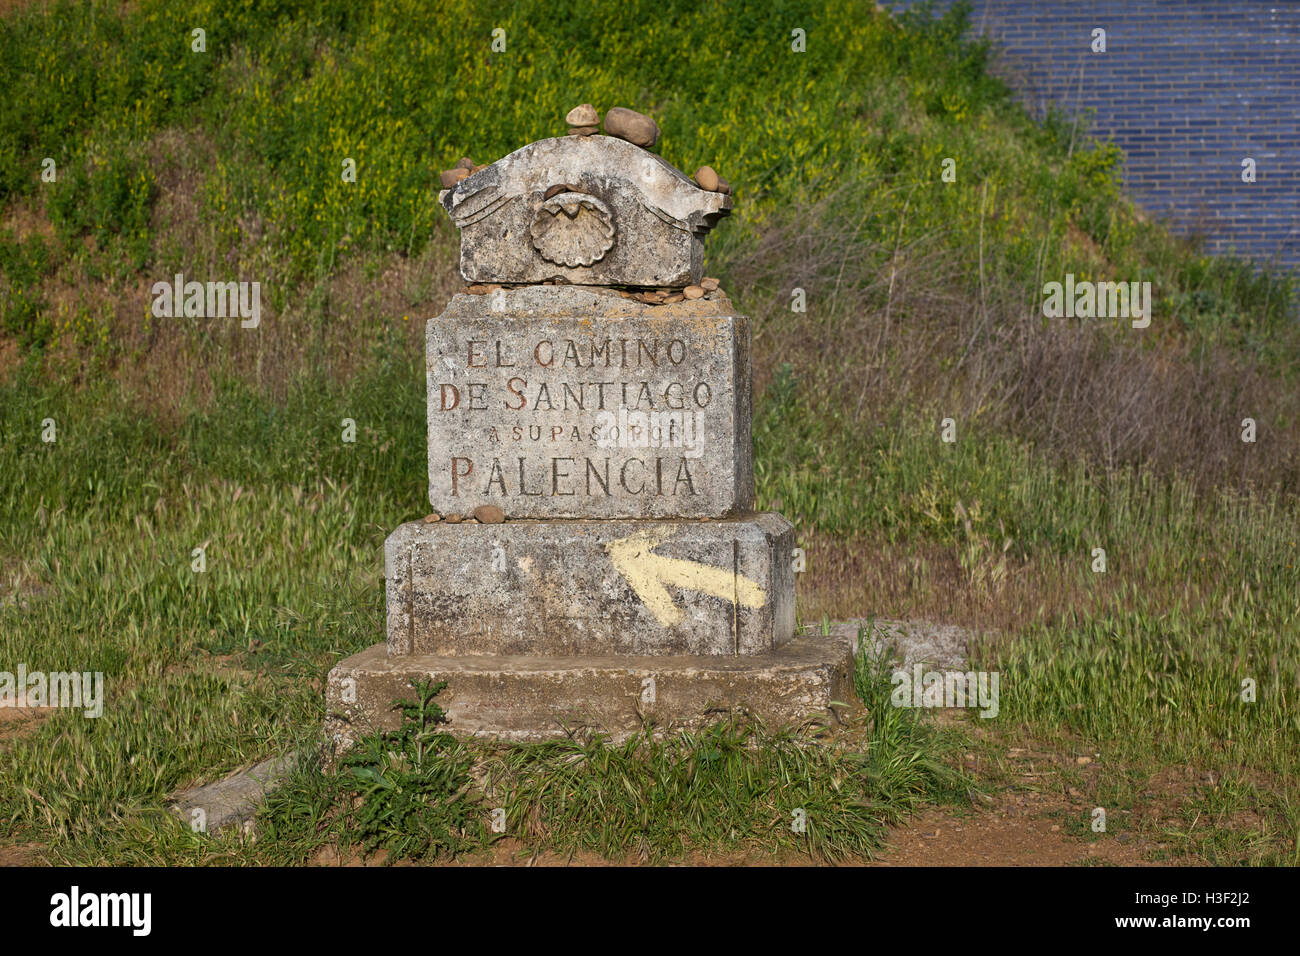 A stone marker signifies the start of the province of Palencia  along the Camino de Santiago, route Frances - Stock Image